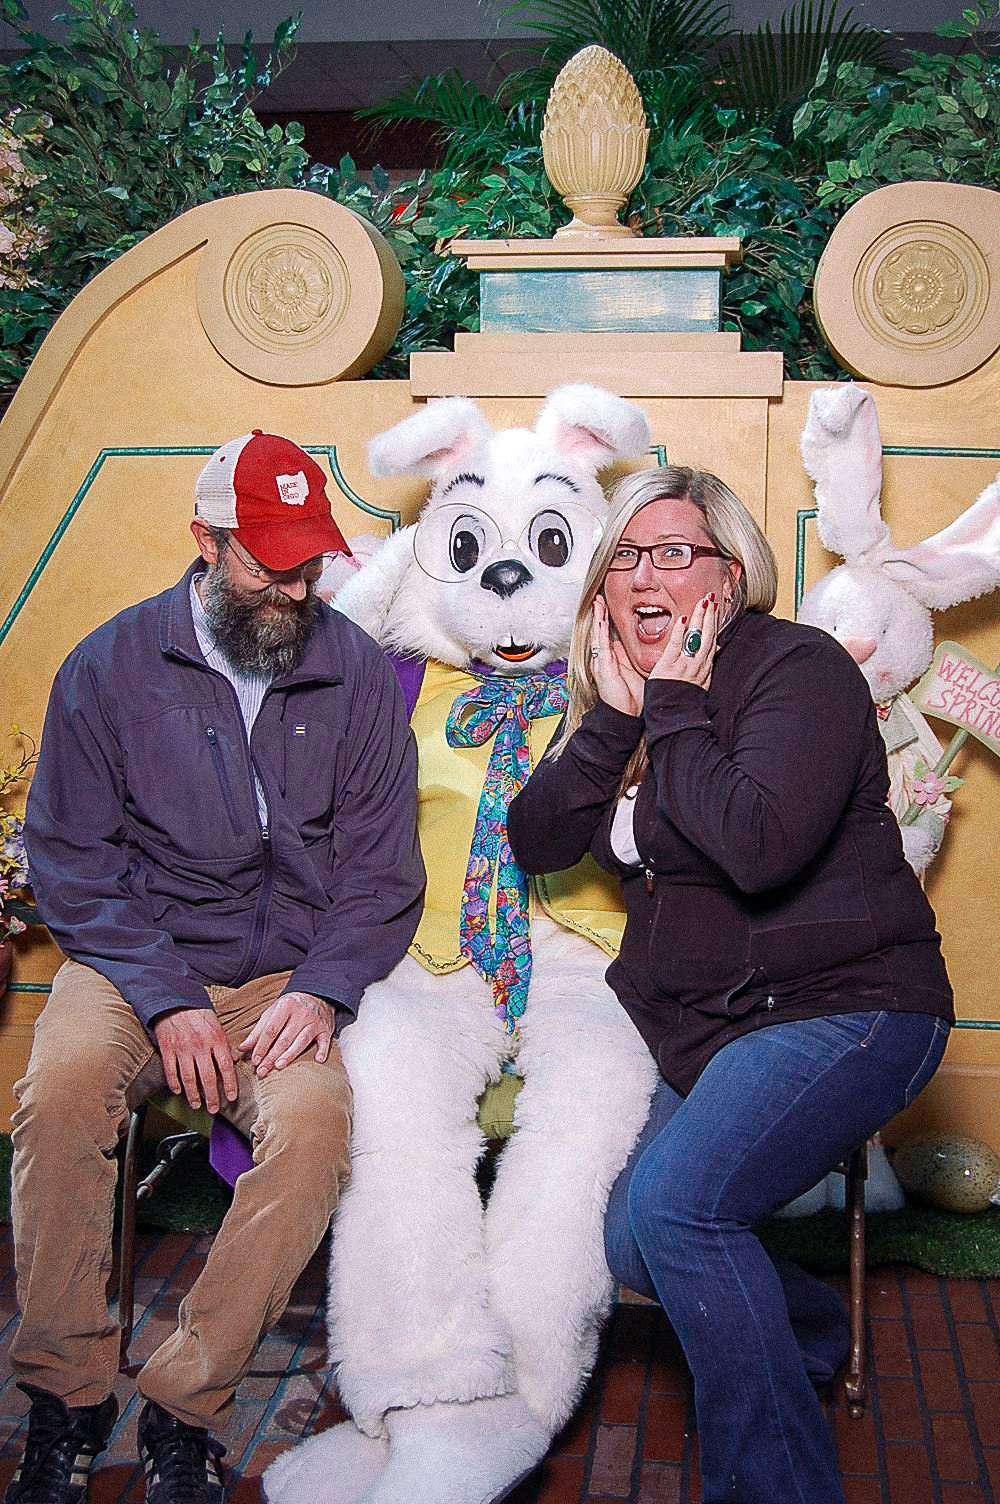 A grown ass man and a grown ass woman on the Easter Bunny's lap